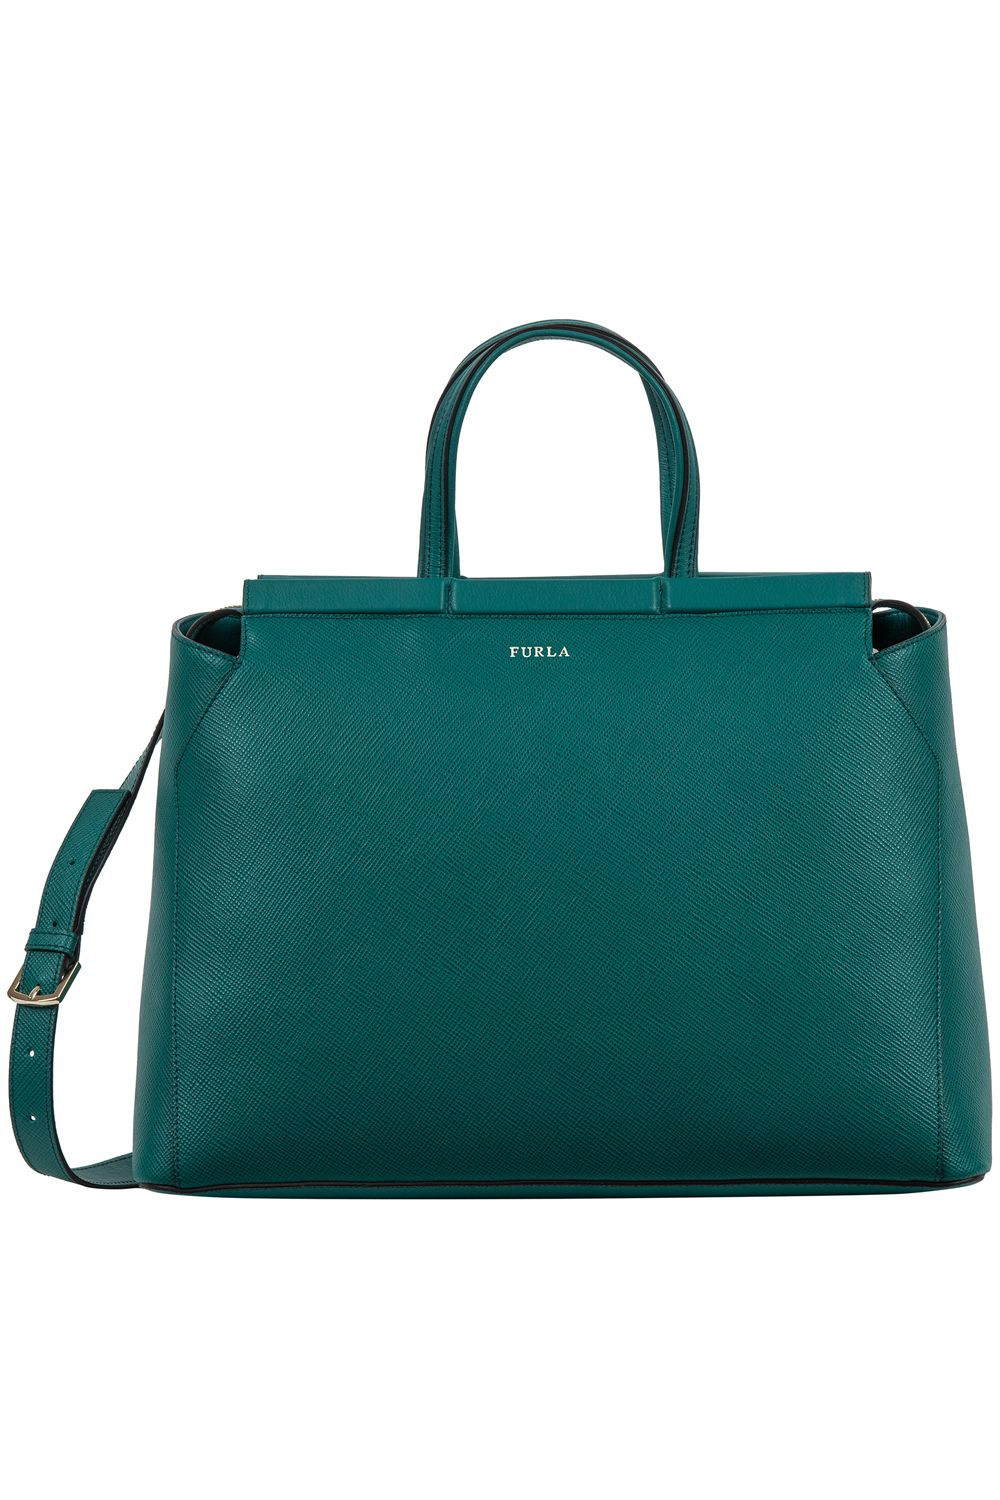 20 Totally Professional Bags That Work With Any Outfit 4870ee2d66c1e